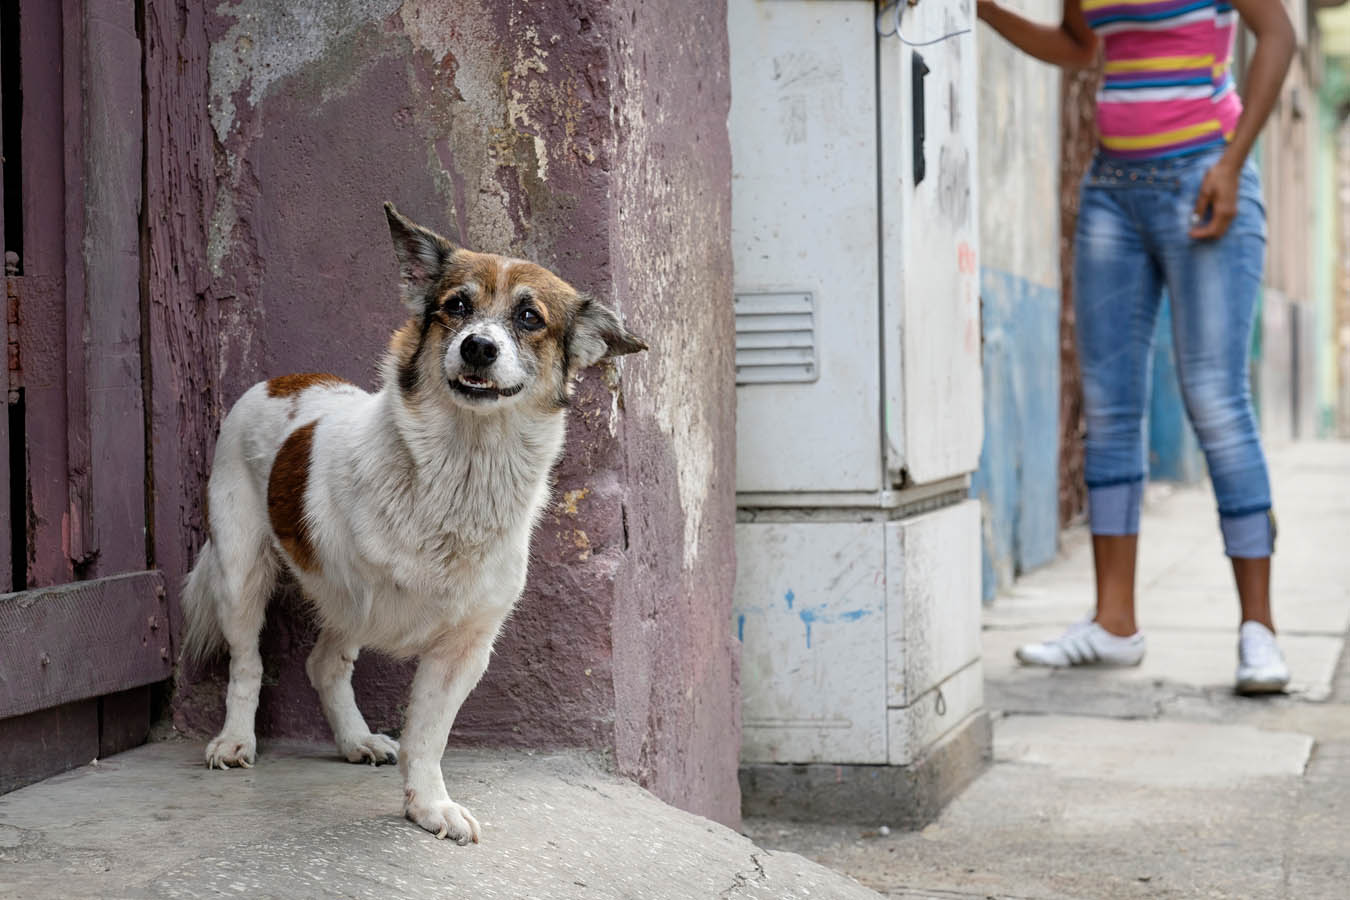 Dogs-of-Cuba-Sharon-Blance-Melbourne-photographer-PWS011-1605